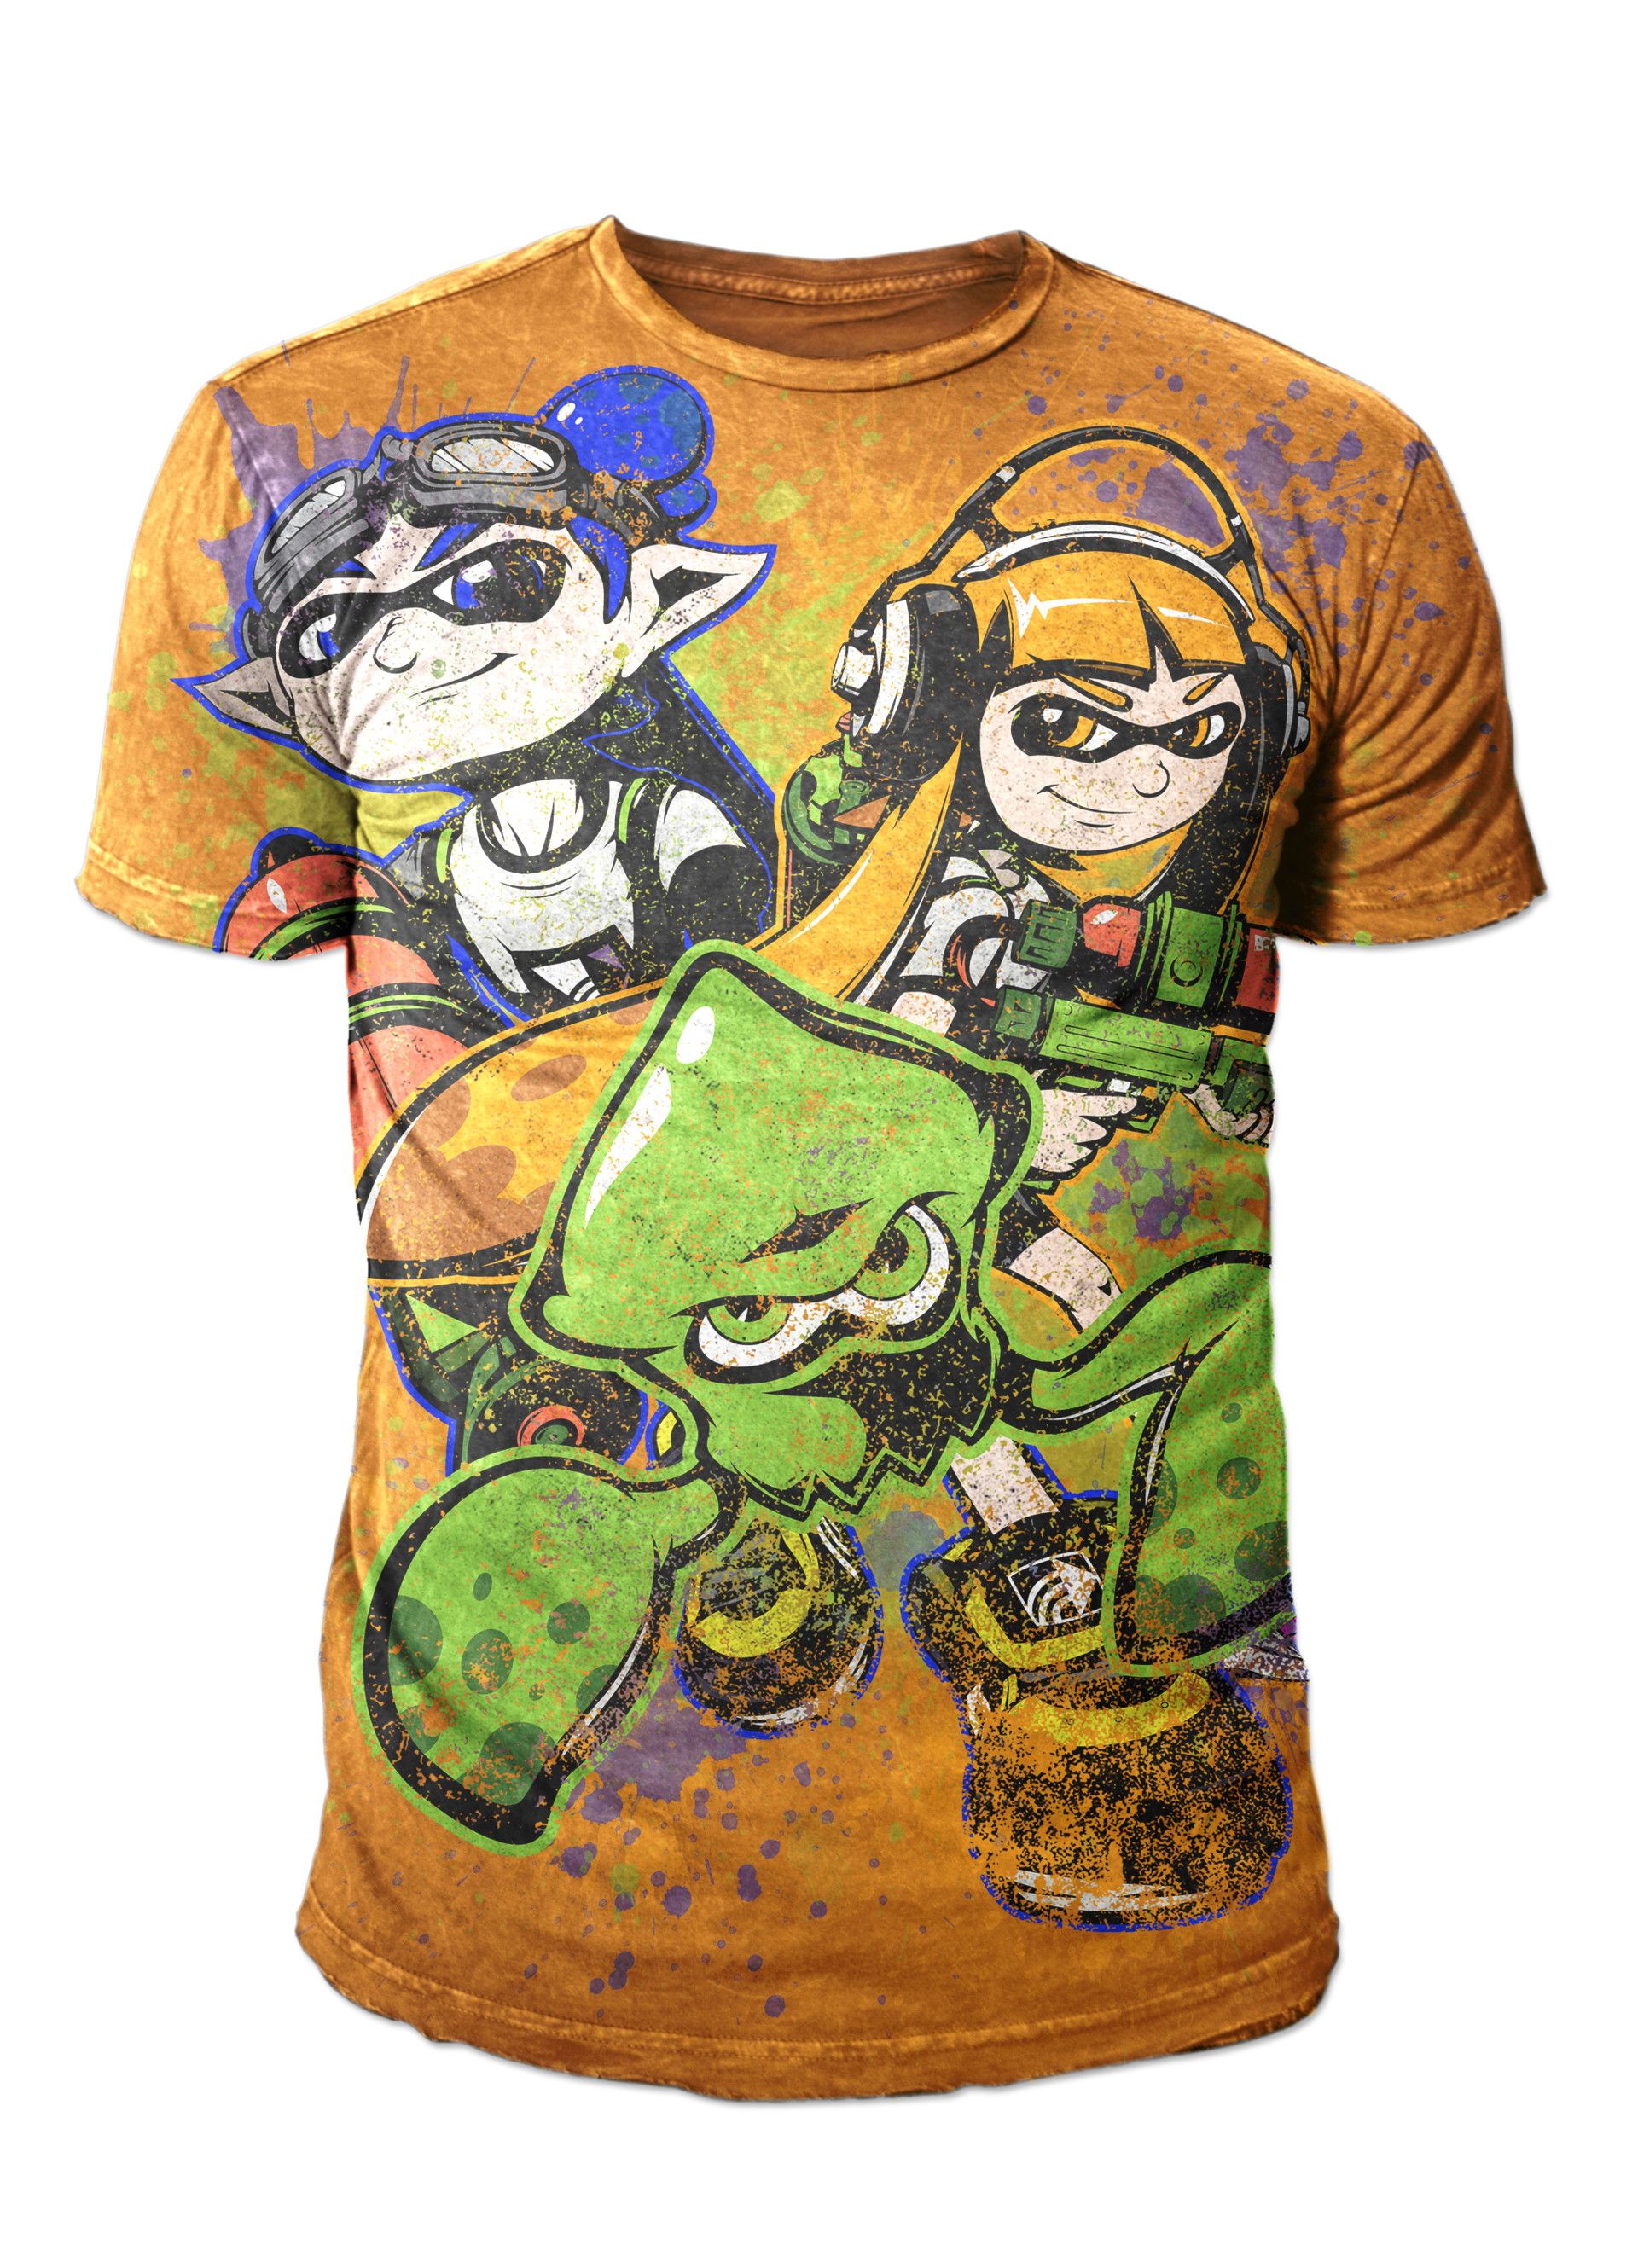 Nathaniel scramling splatoon shirt design